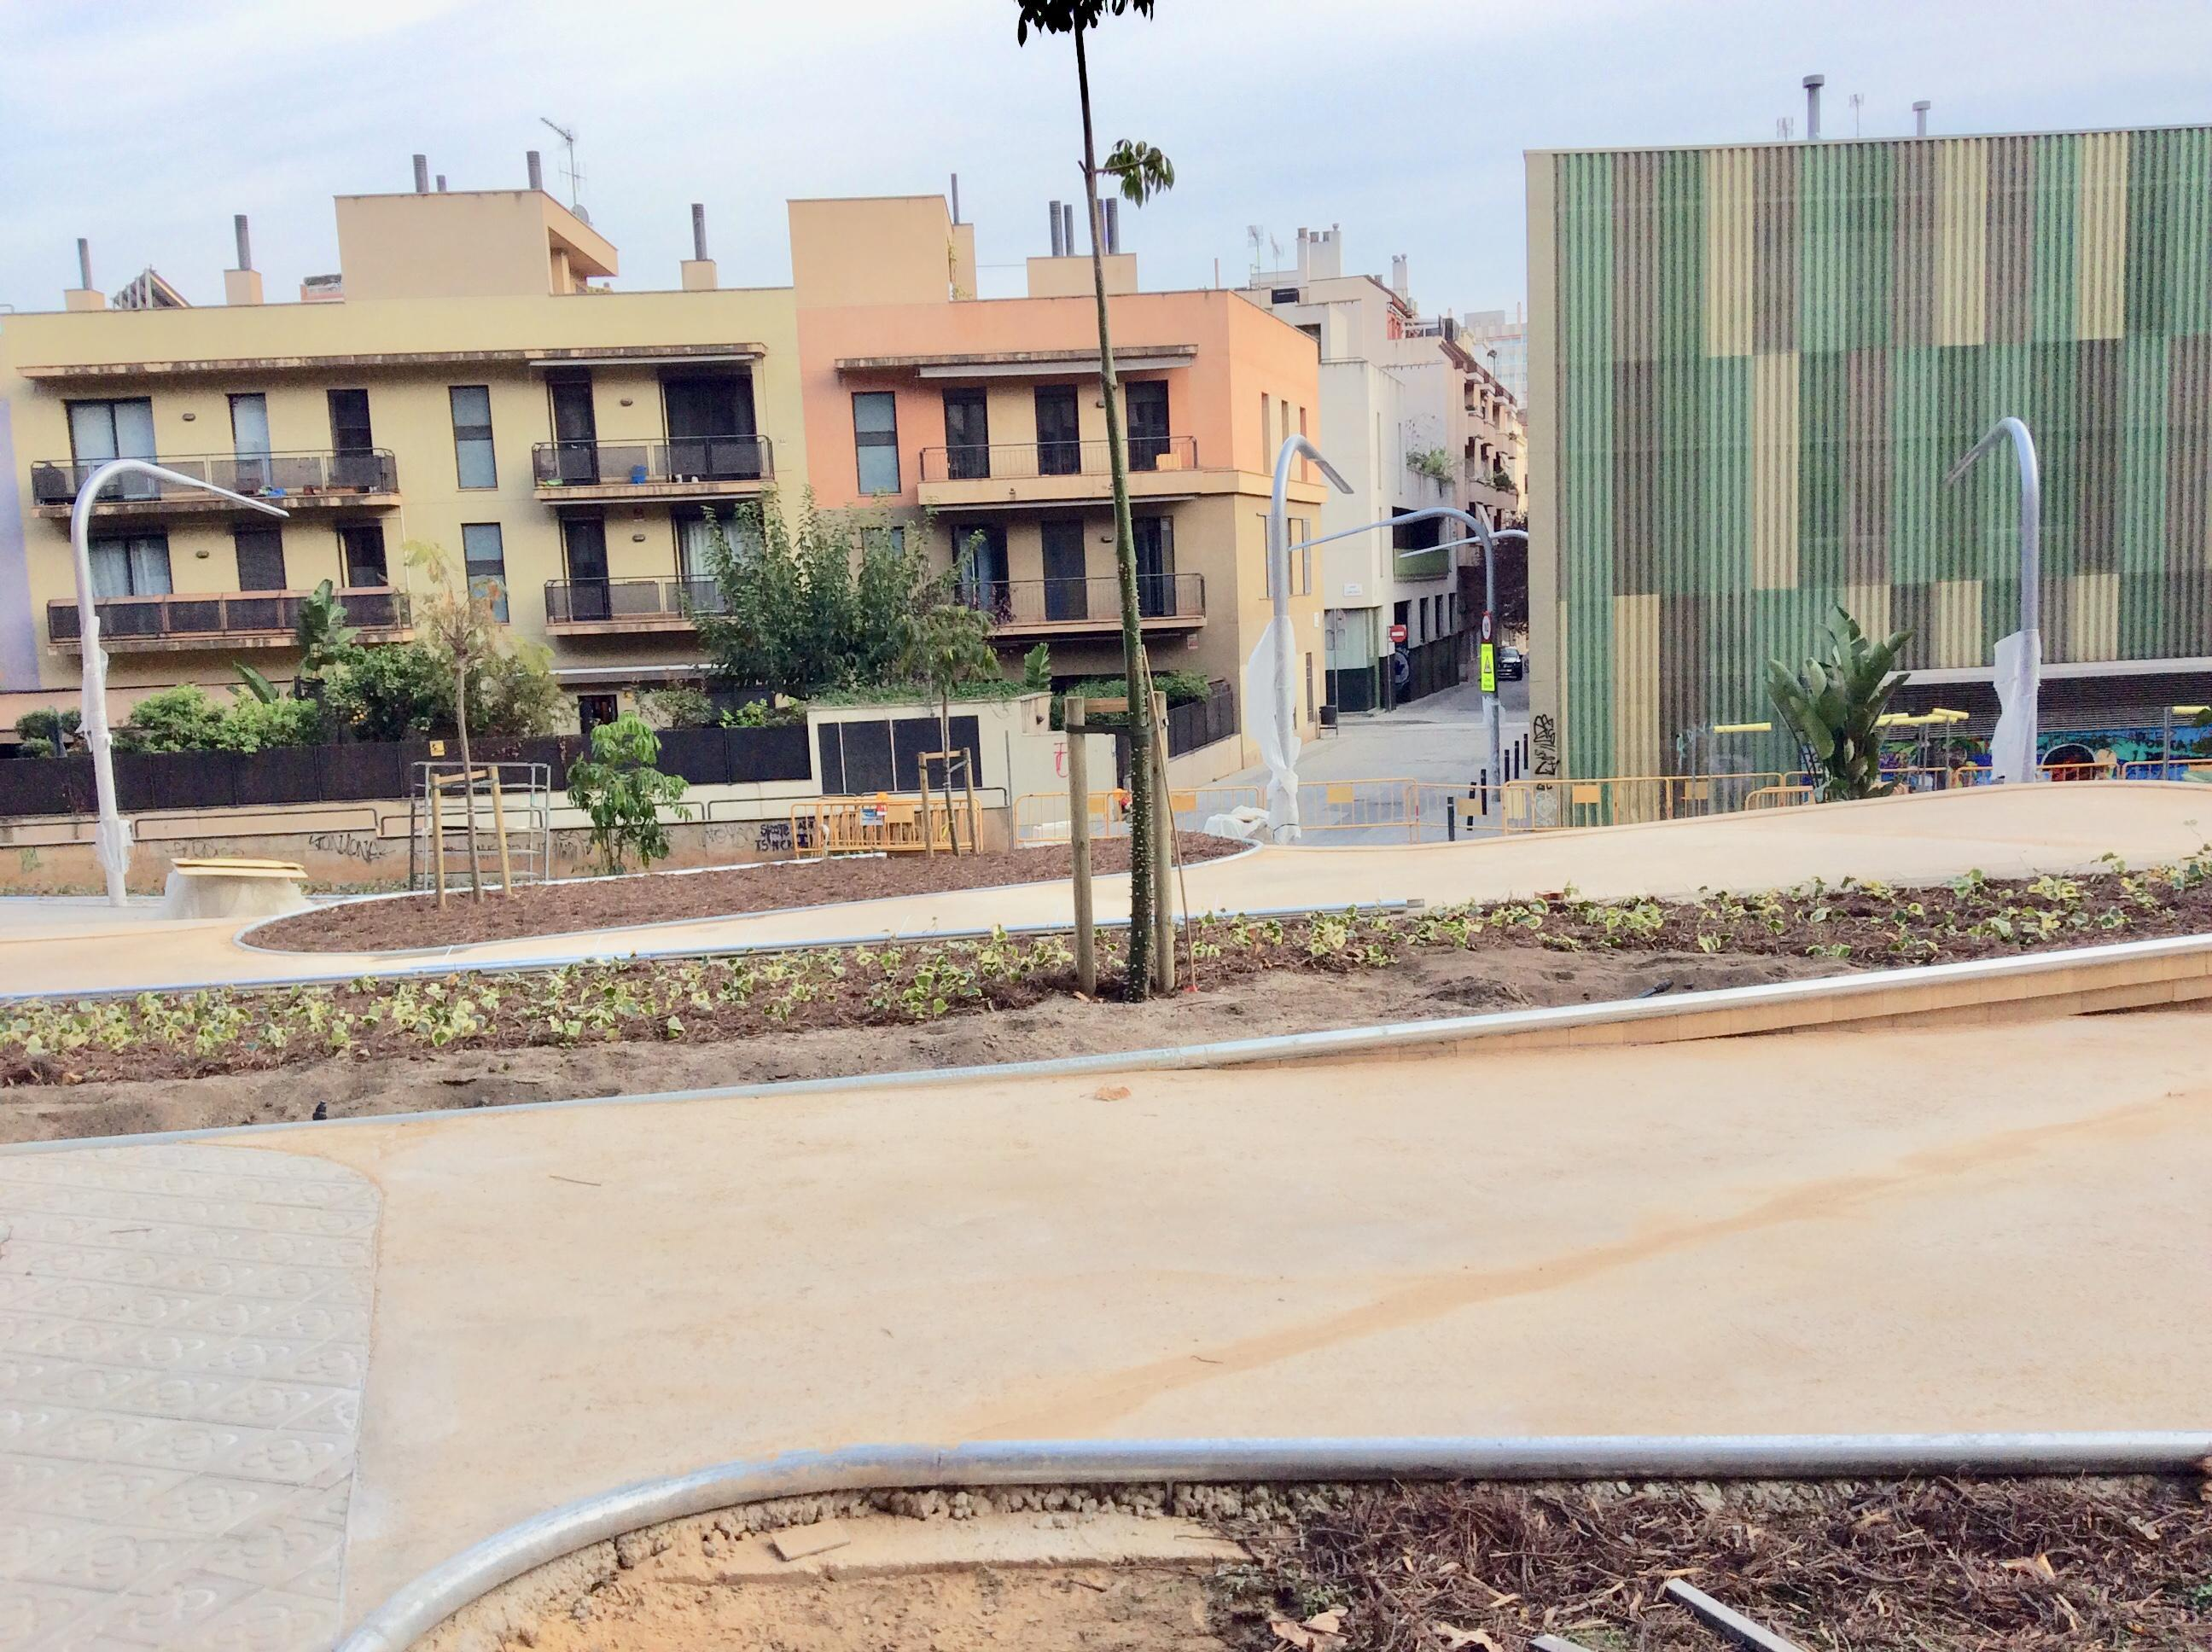 208066 Commercial Premises for sale in Les Corts, Les Corts 21